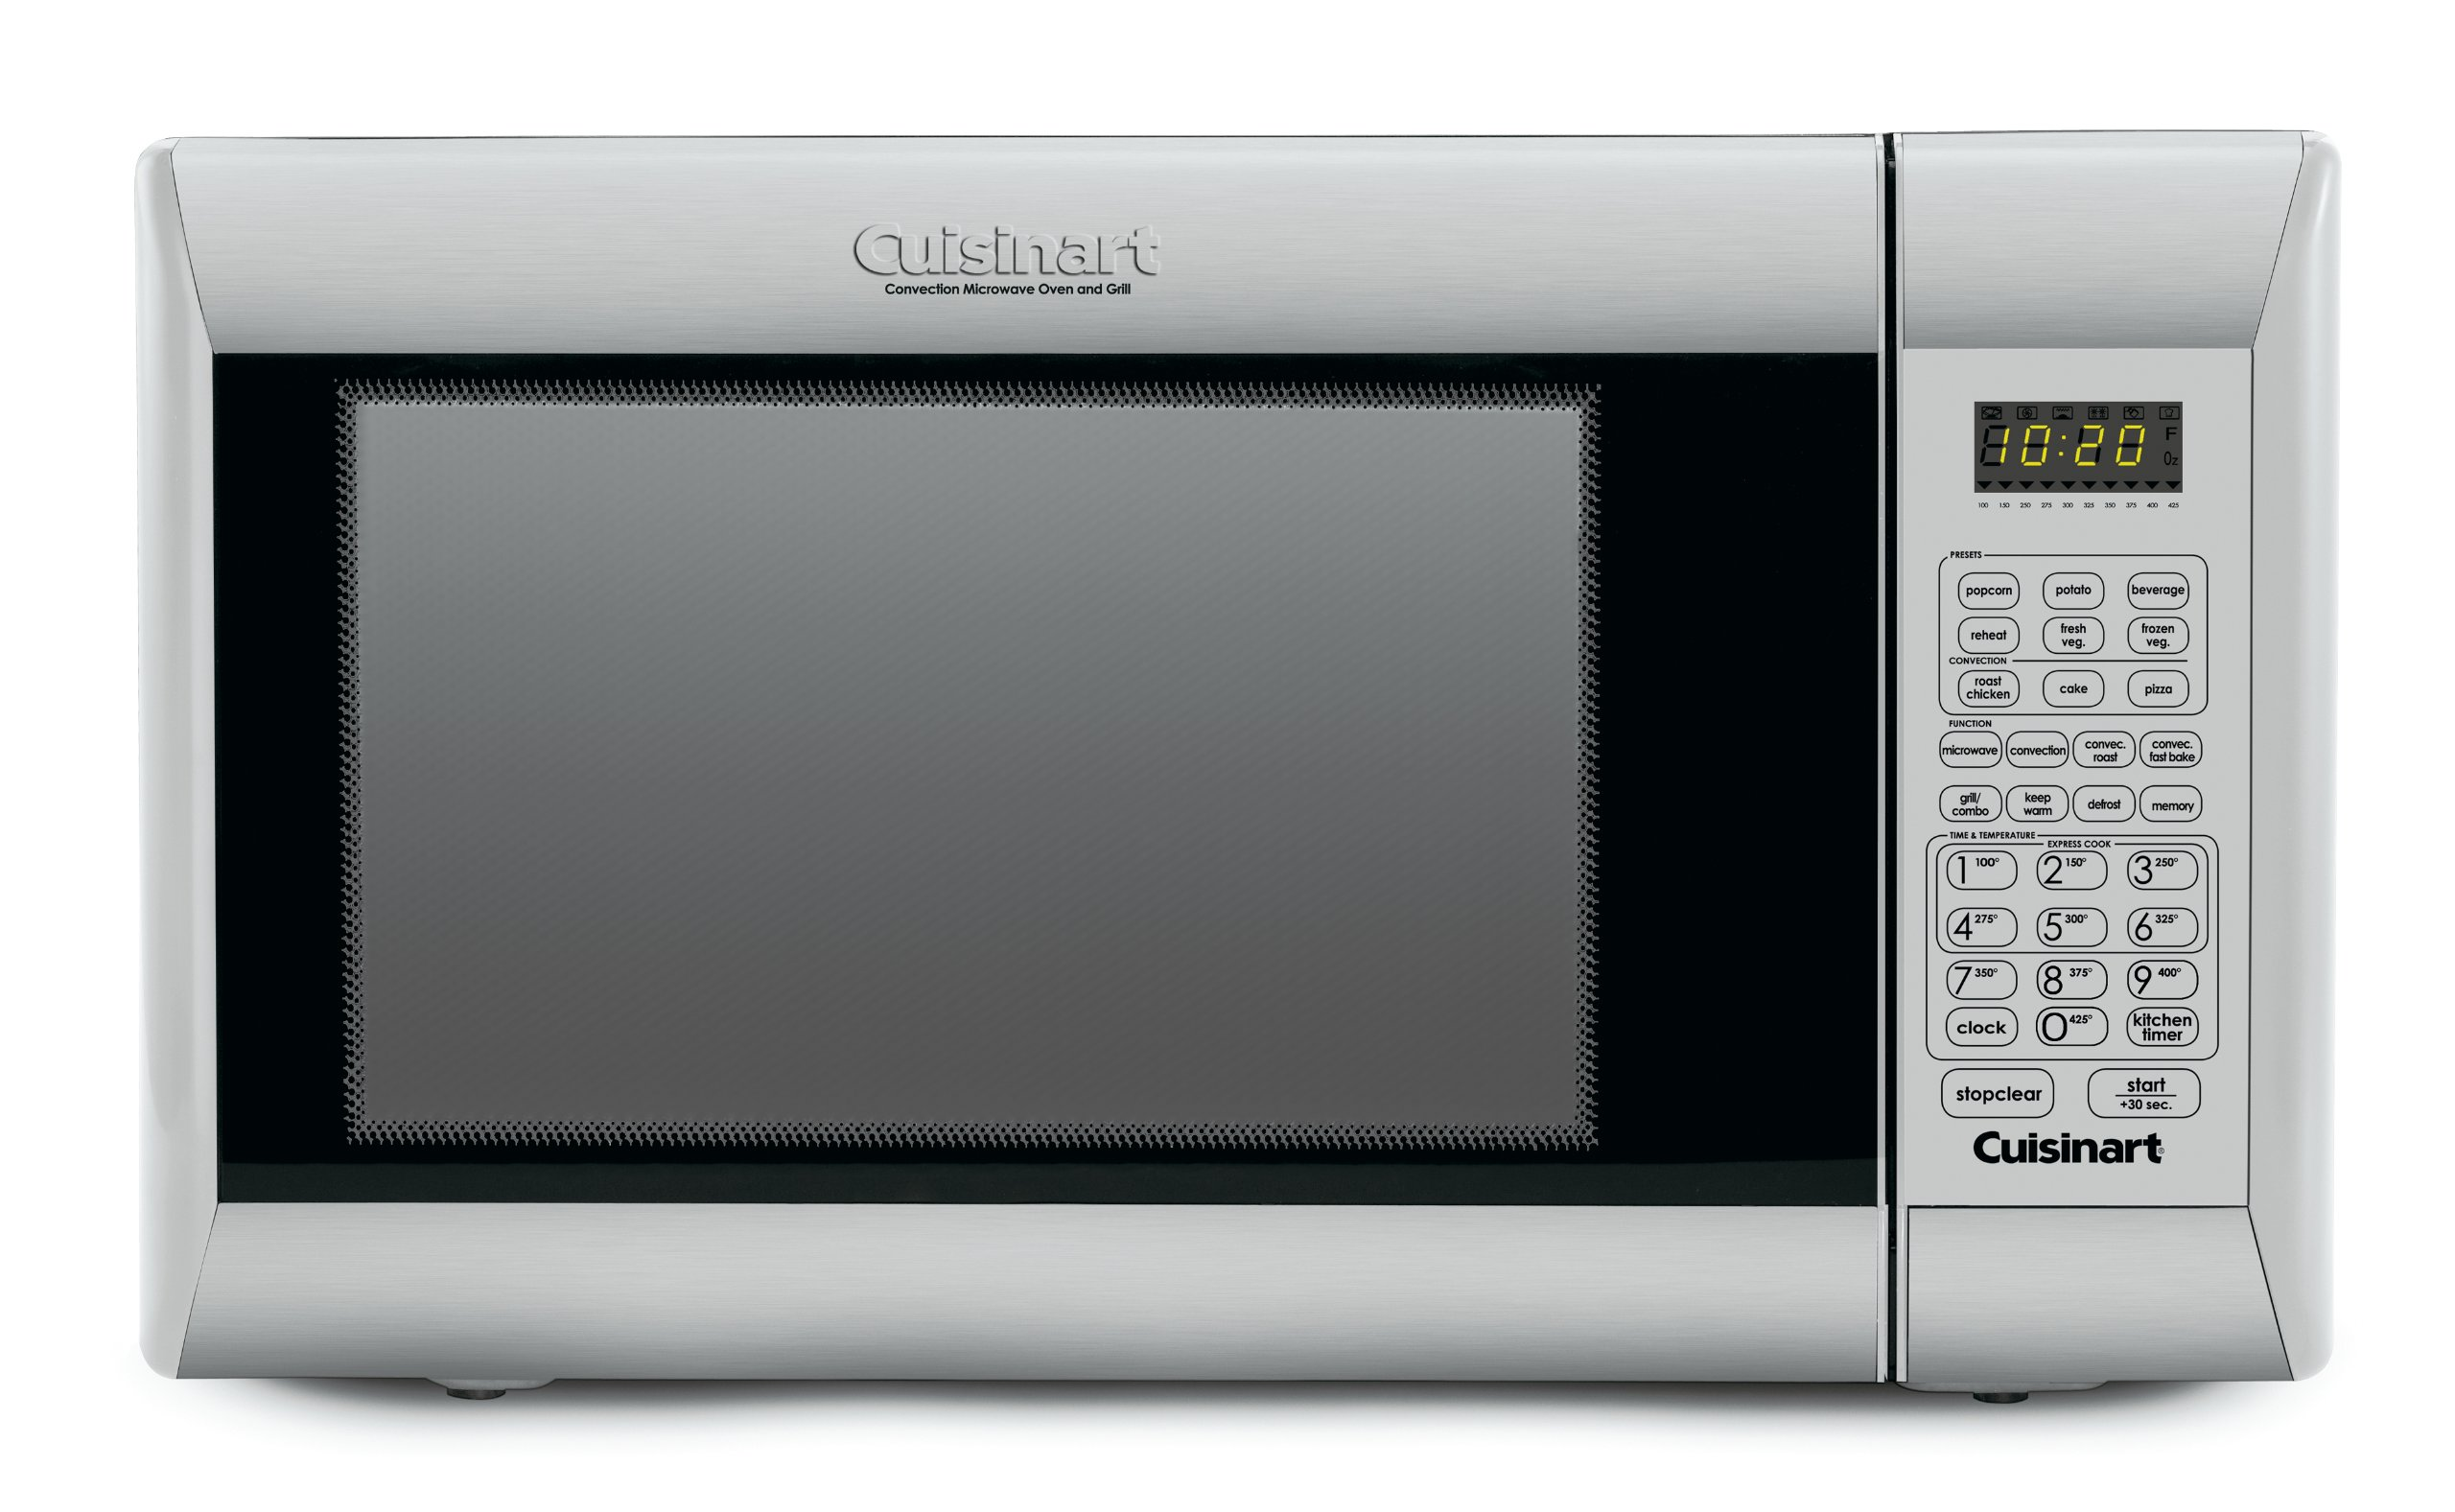 Cuisinart Cmw 200 1 2 Cubic Foot Convection Microwave Oven